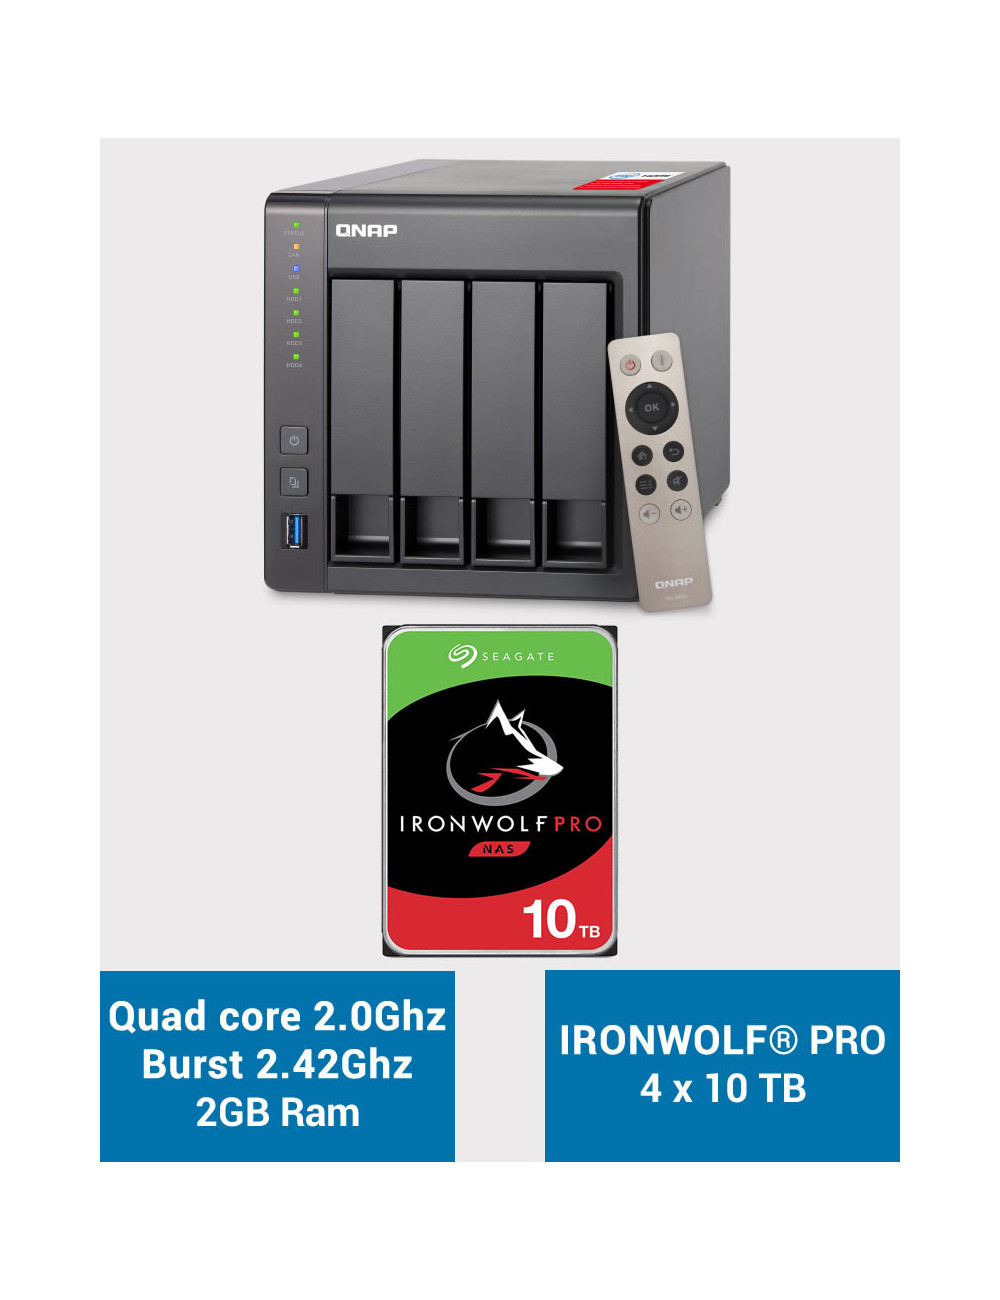 QNAP TS-451+ 2Go Serveur NAS IRONWOLF PRO 40To (4x10To)